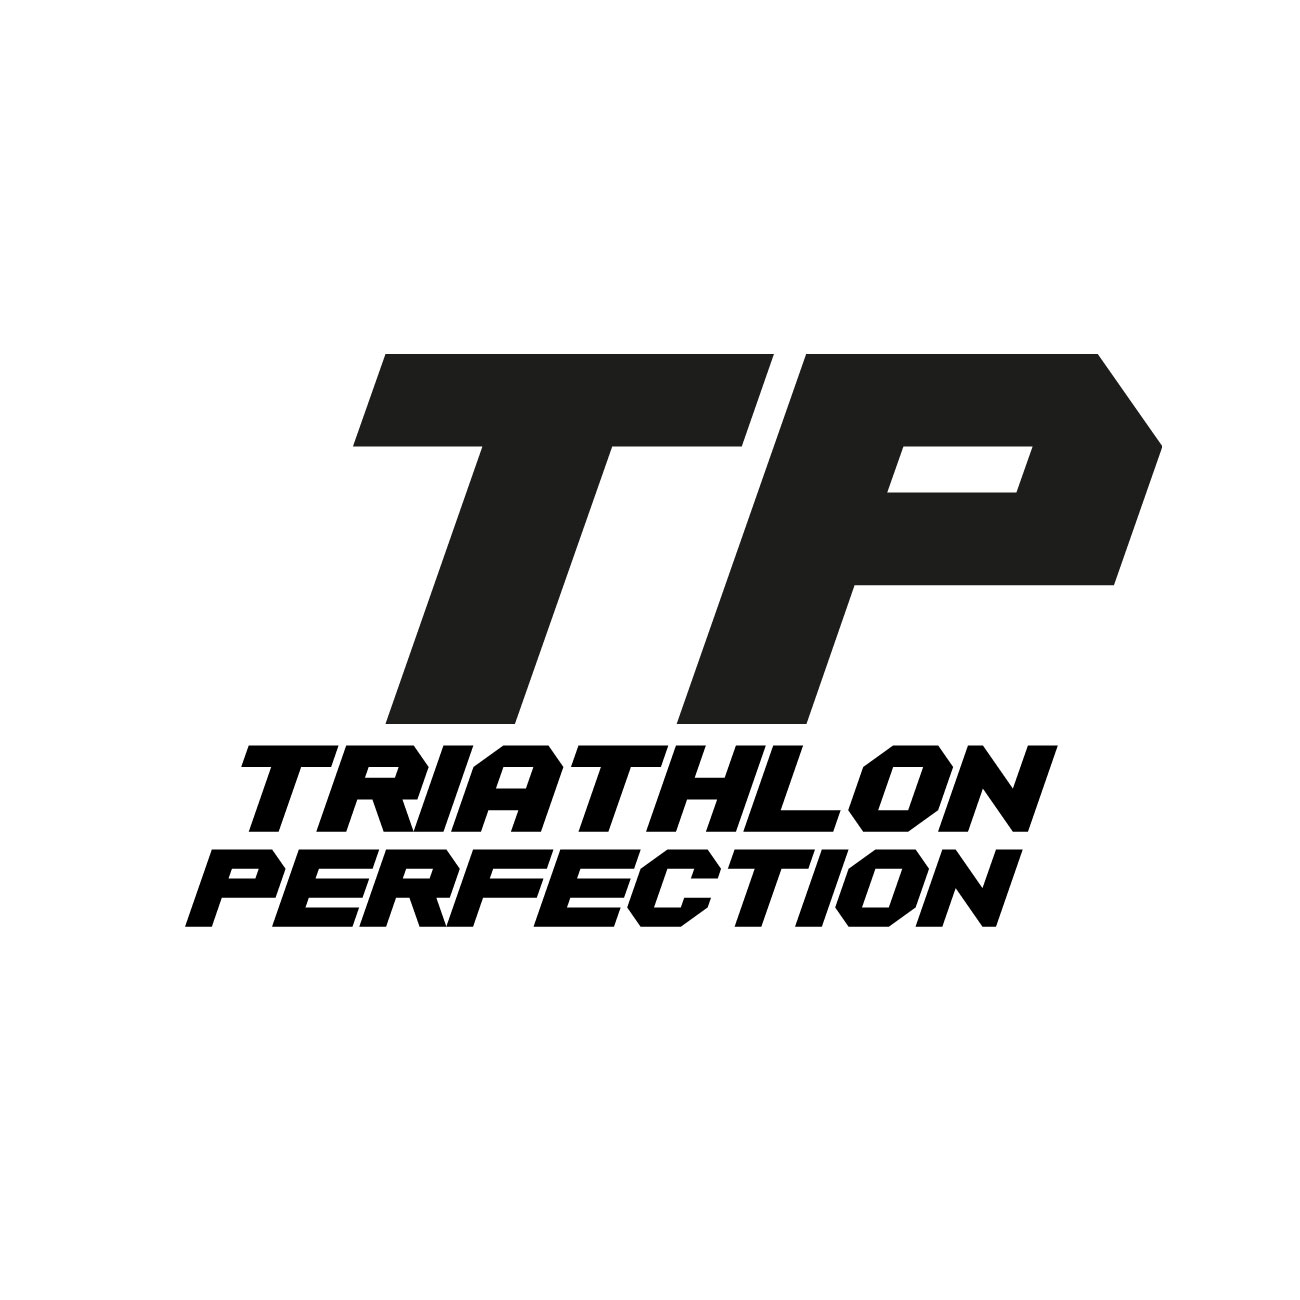 Triathlon Perfection Laktaat-inspanningstest